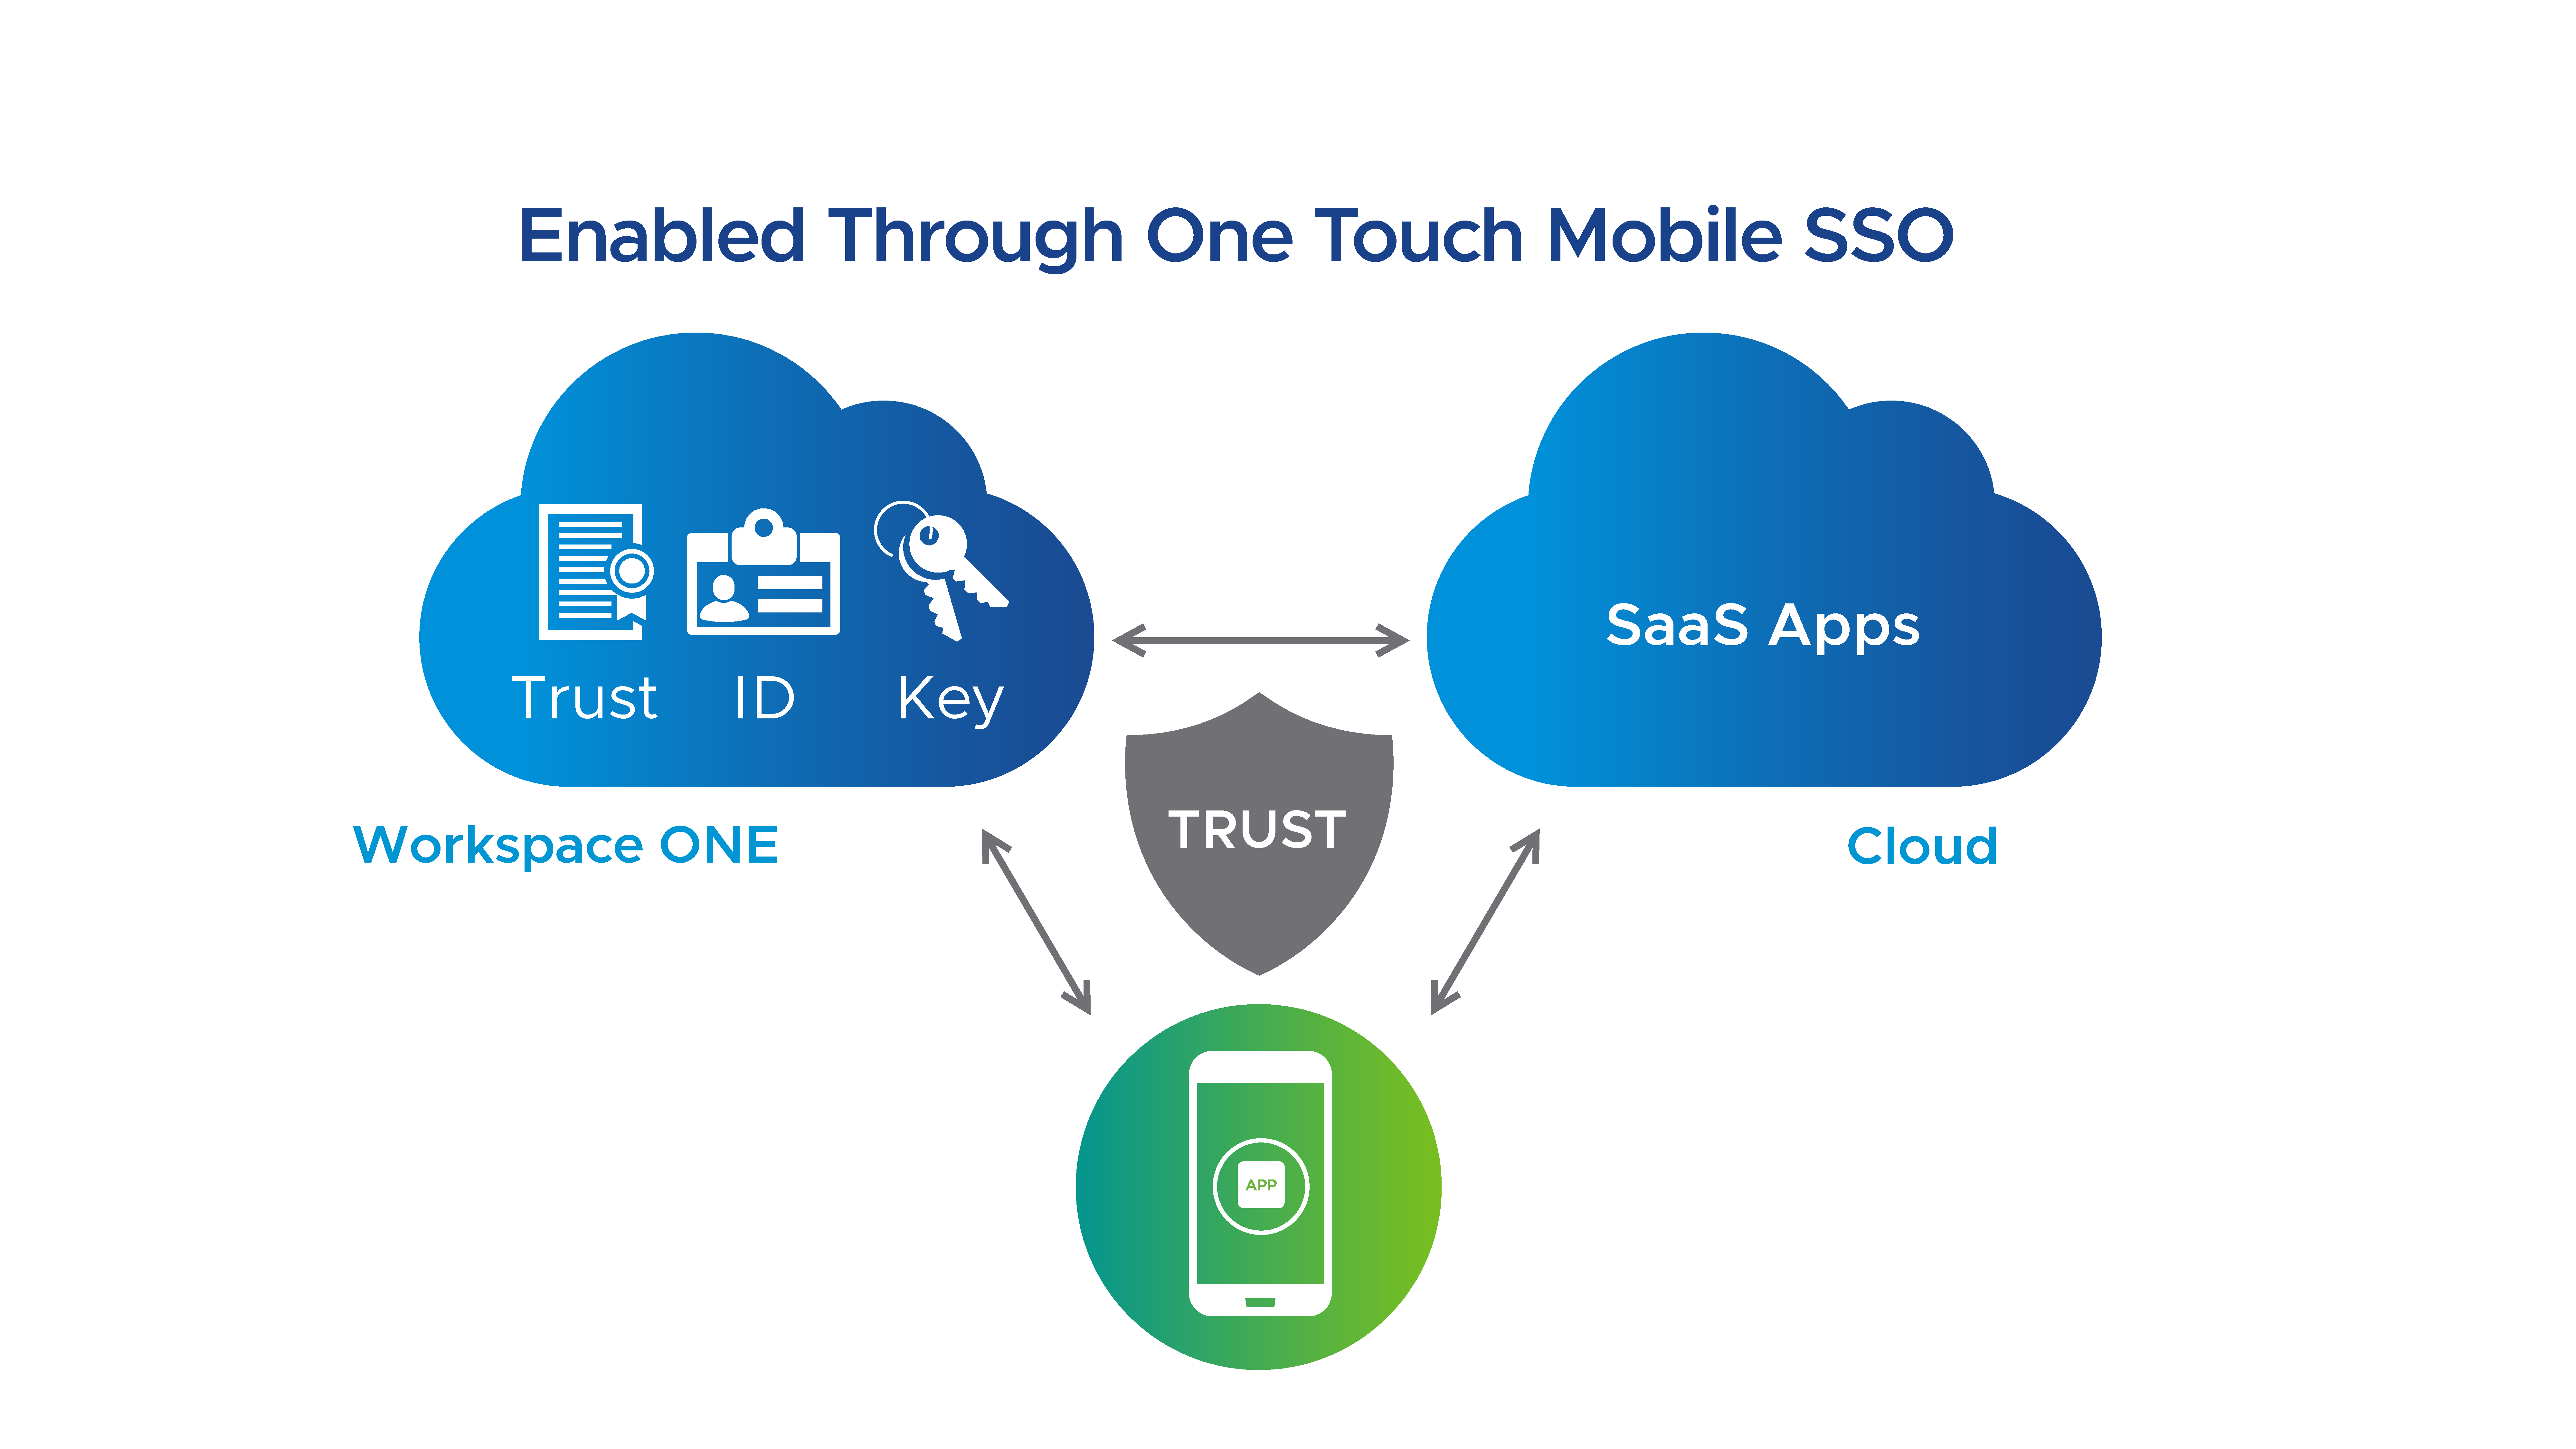 Mobile SSO in Workspace ONE or myworkspaceone provides a password-less, single sign-on (SSO) experience.